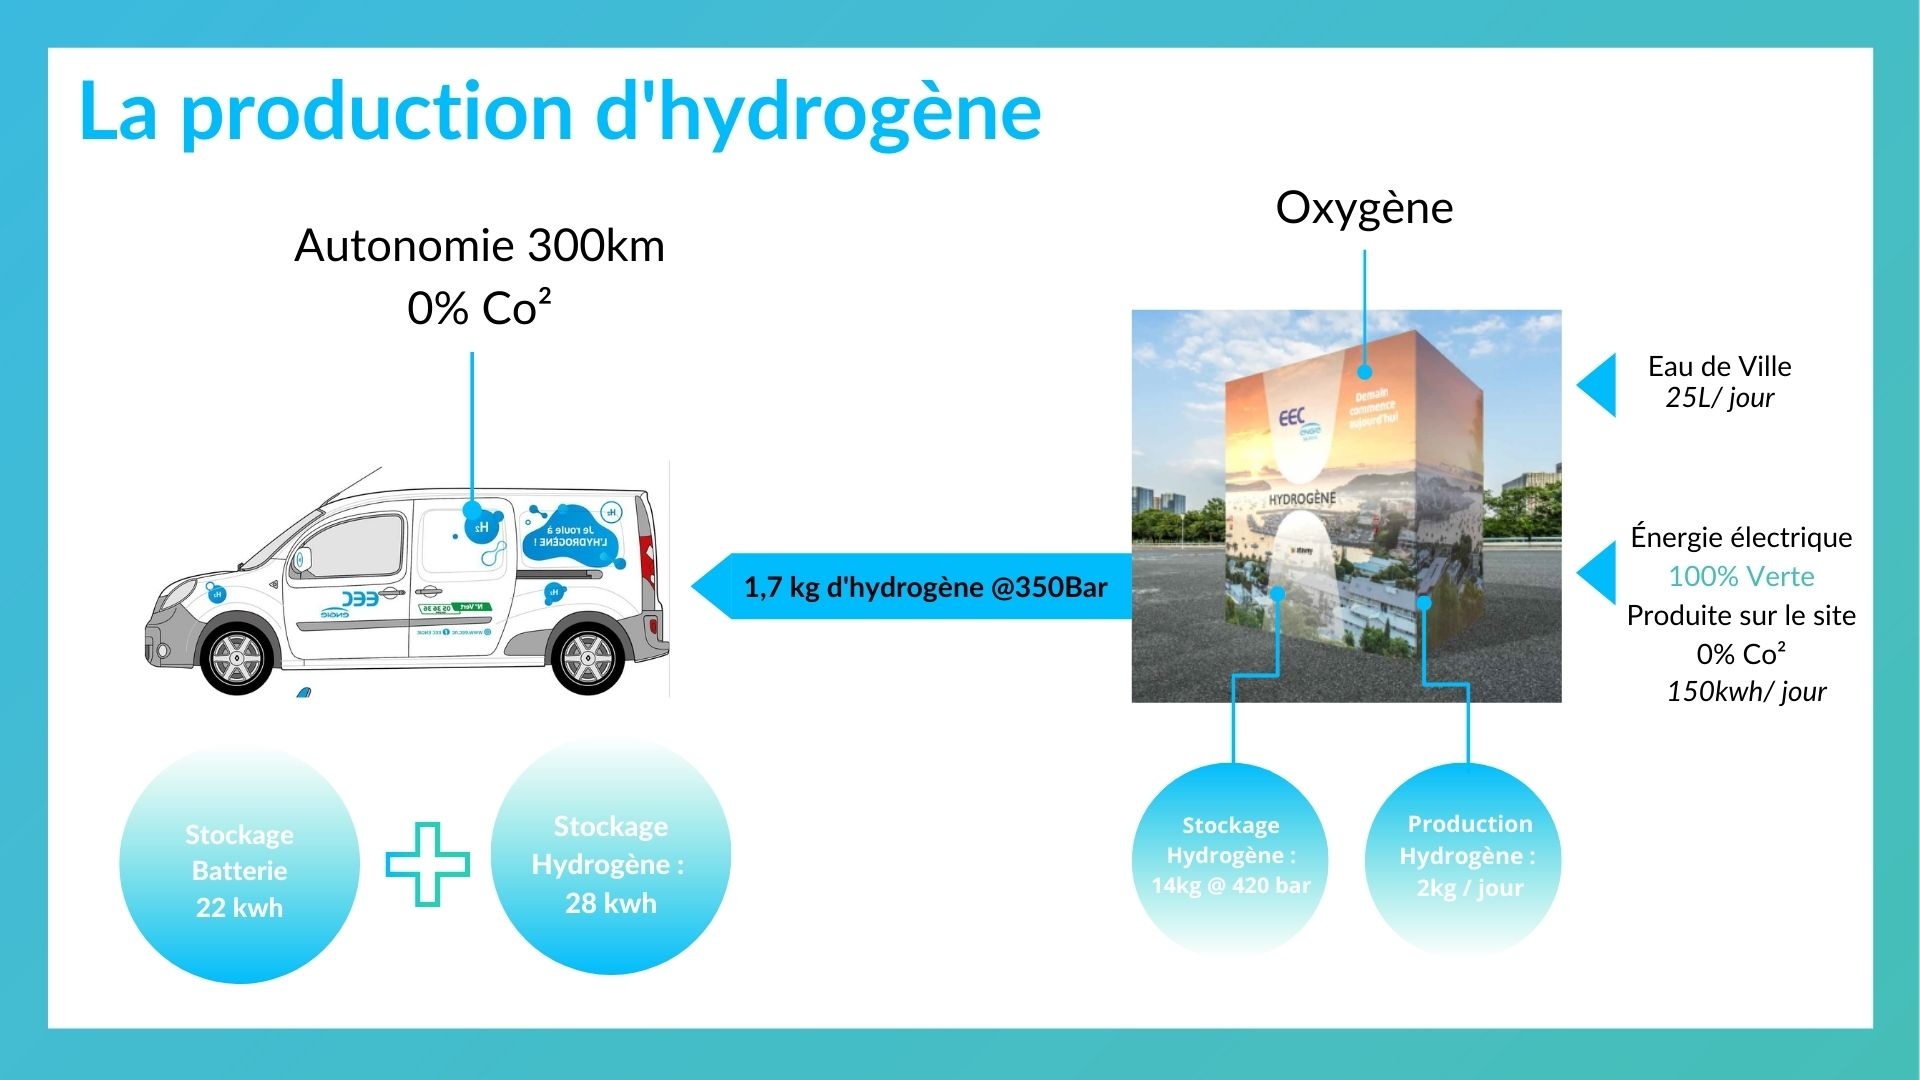 prod hydro eec engie article